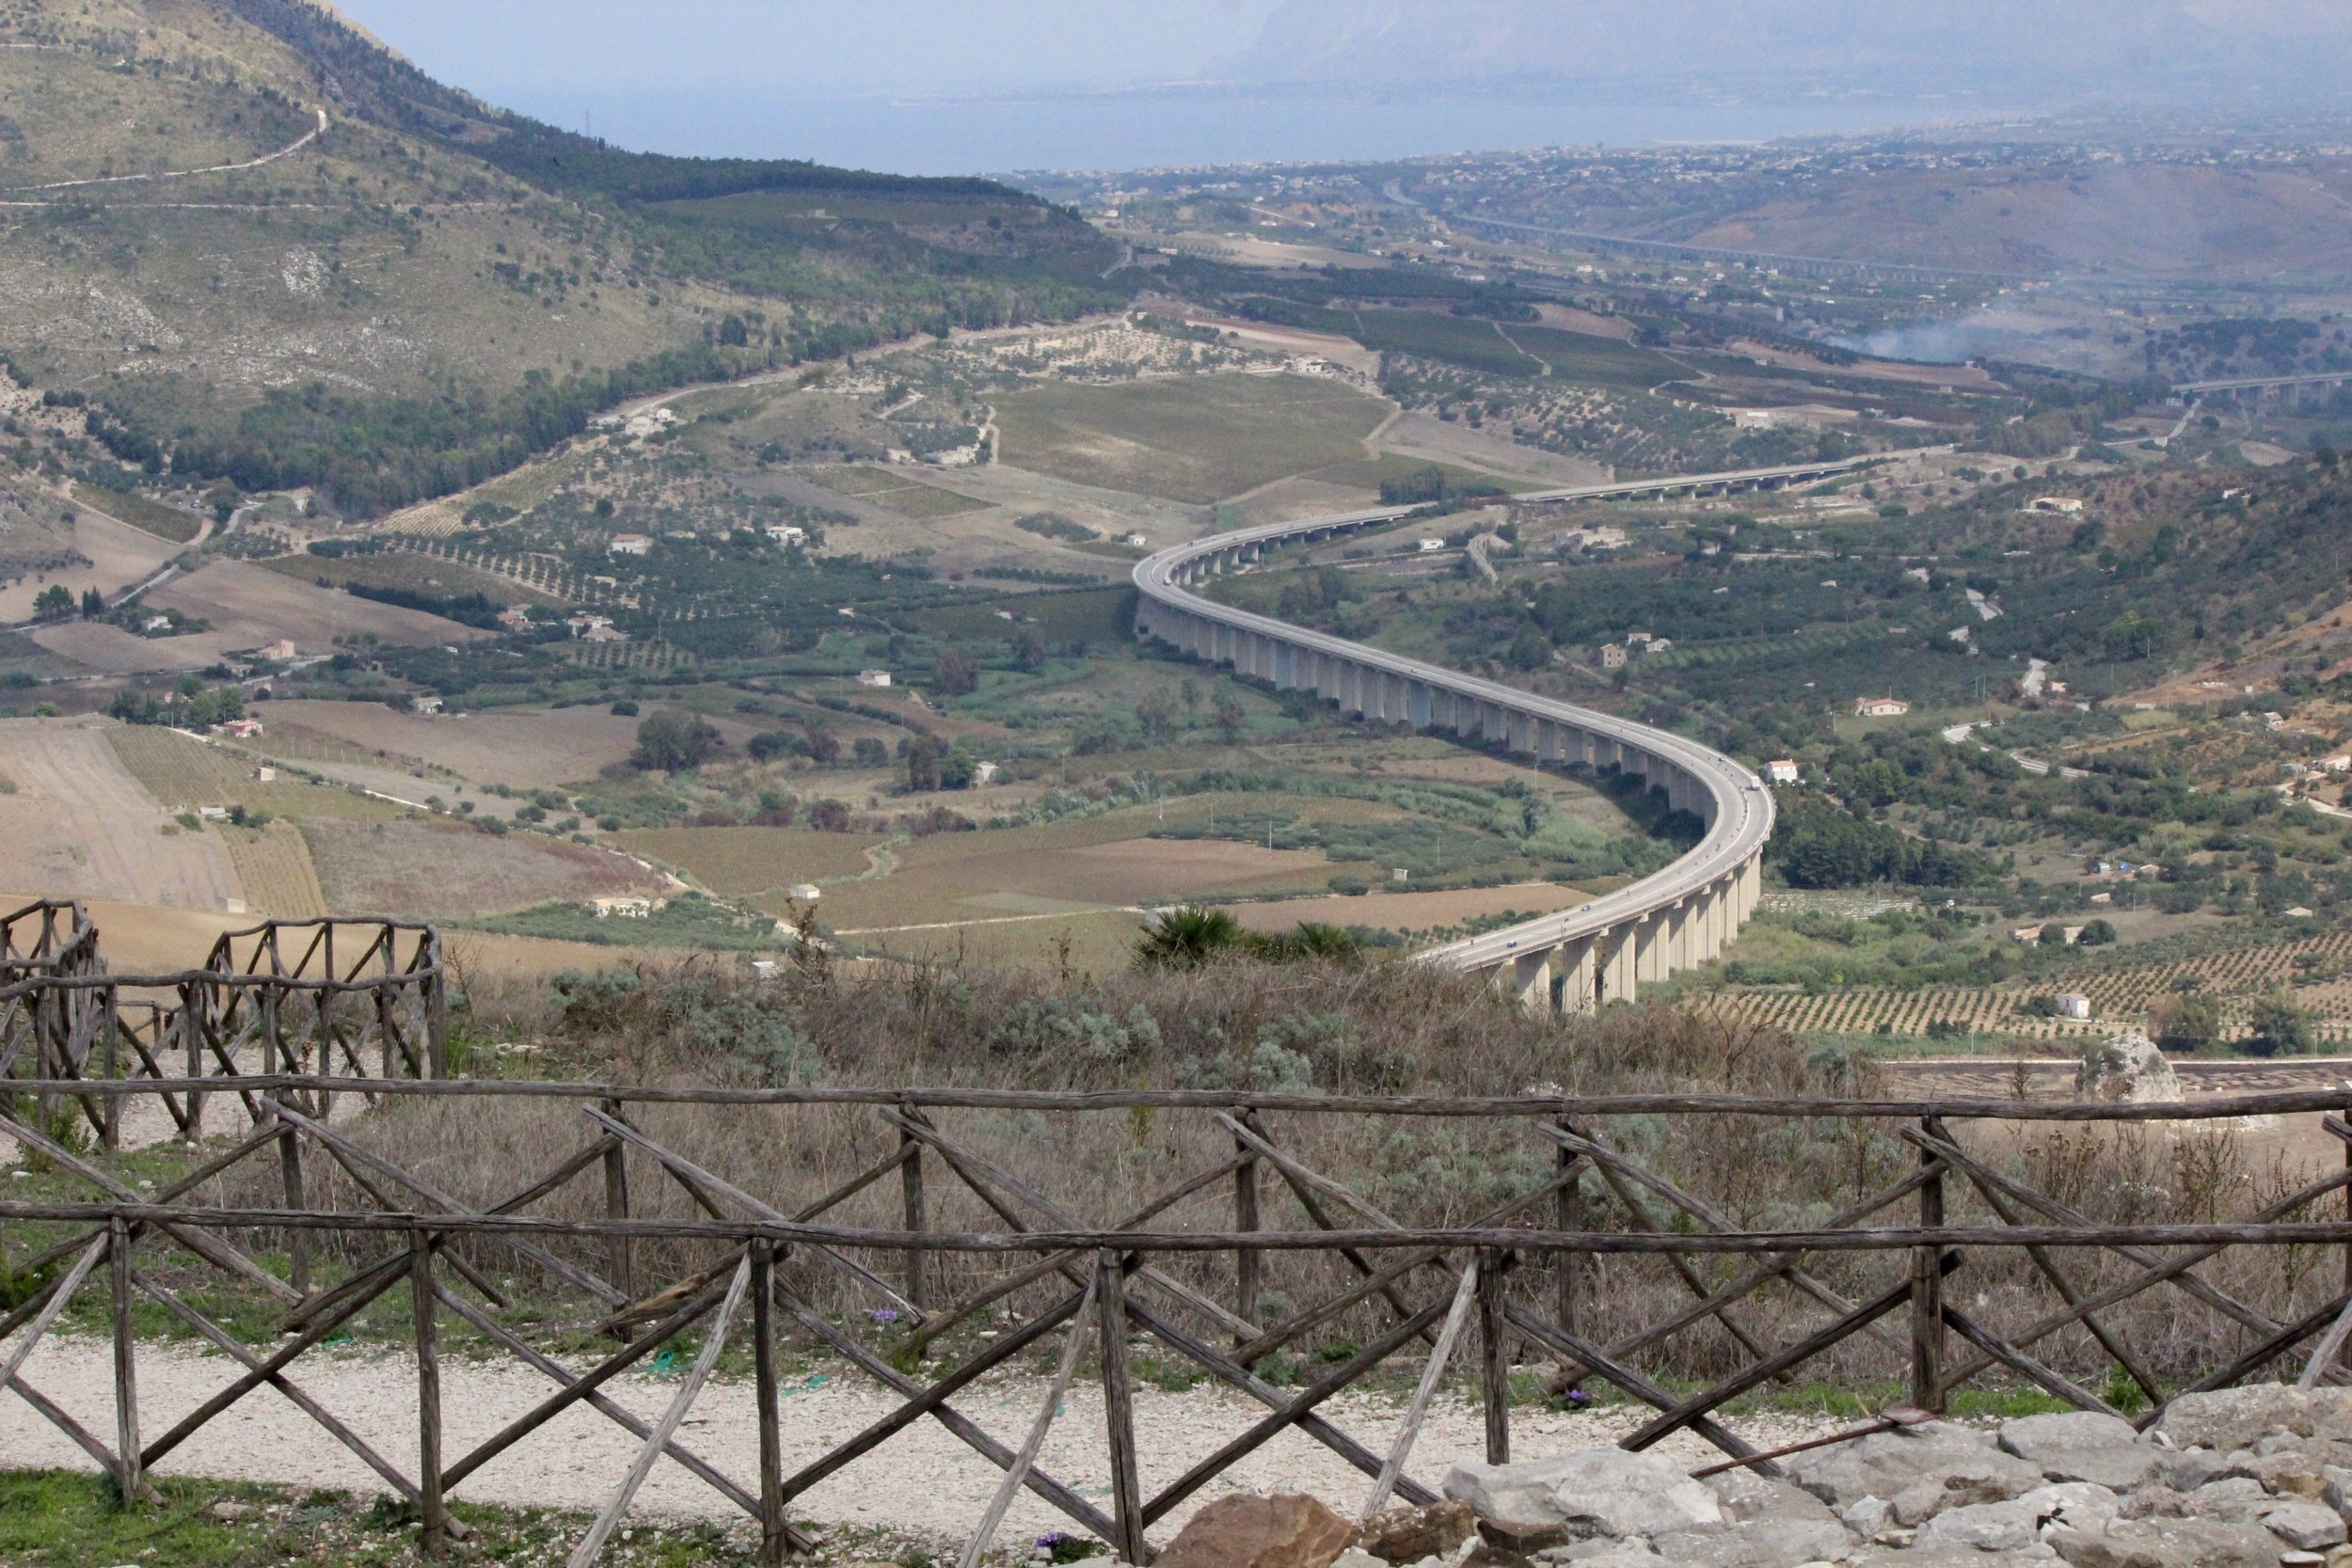 From the site, looking out at the snaking freeway that is headed toward the Tyrrhenian Sea in the distance.